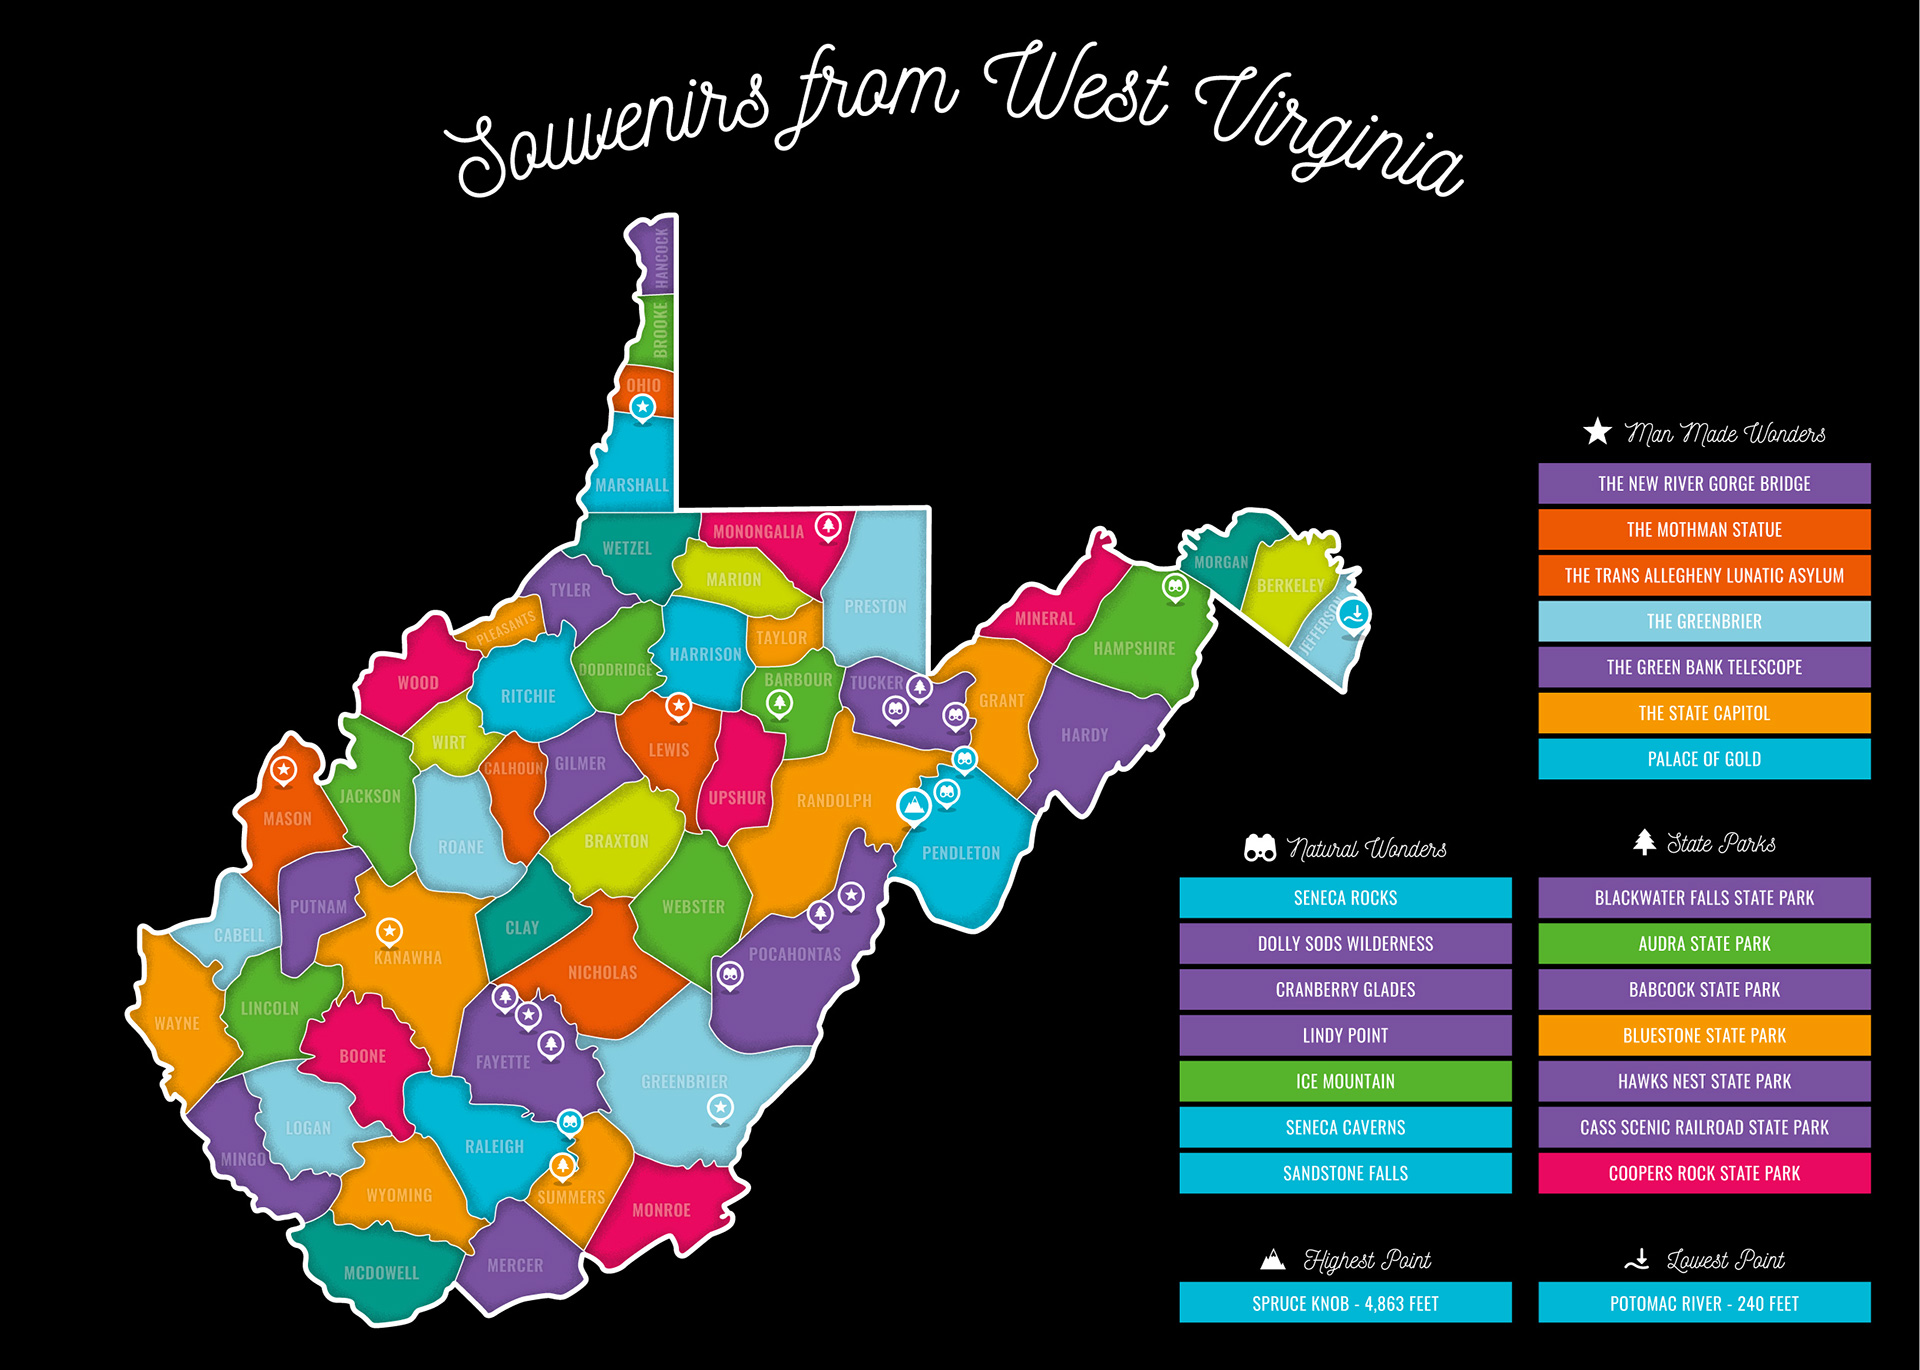 West Virginia map after being revealed